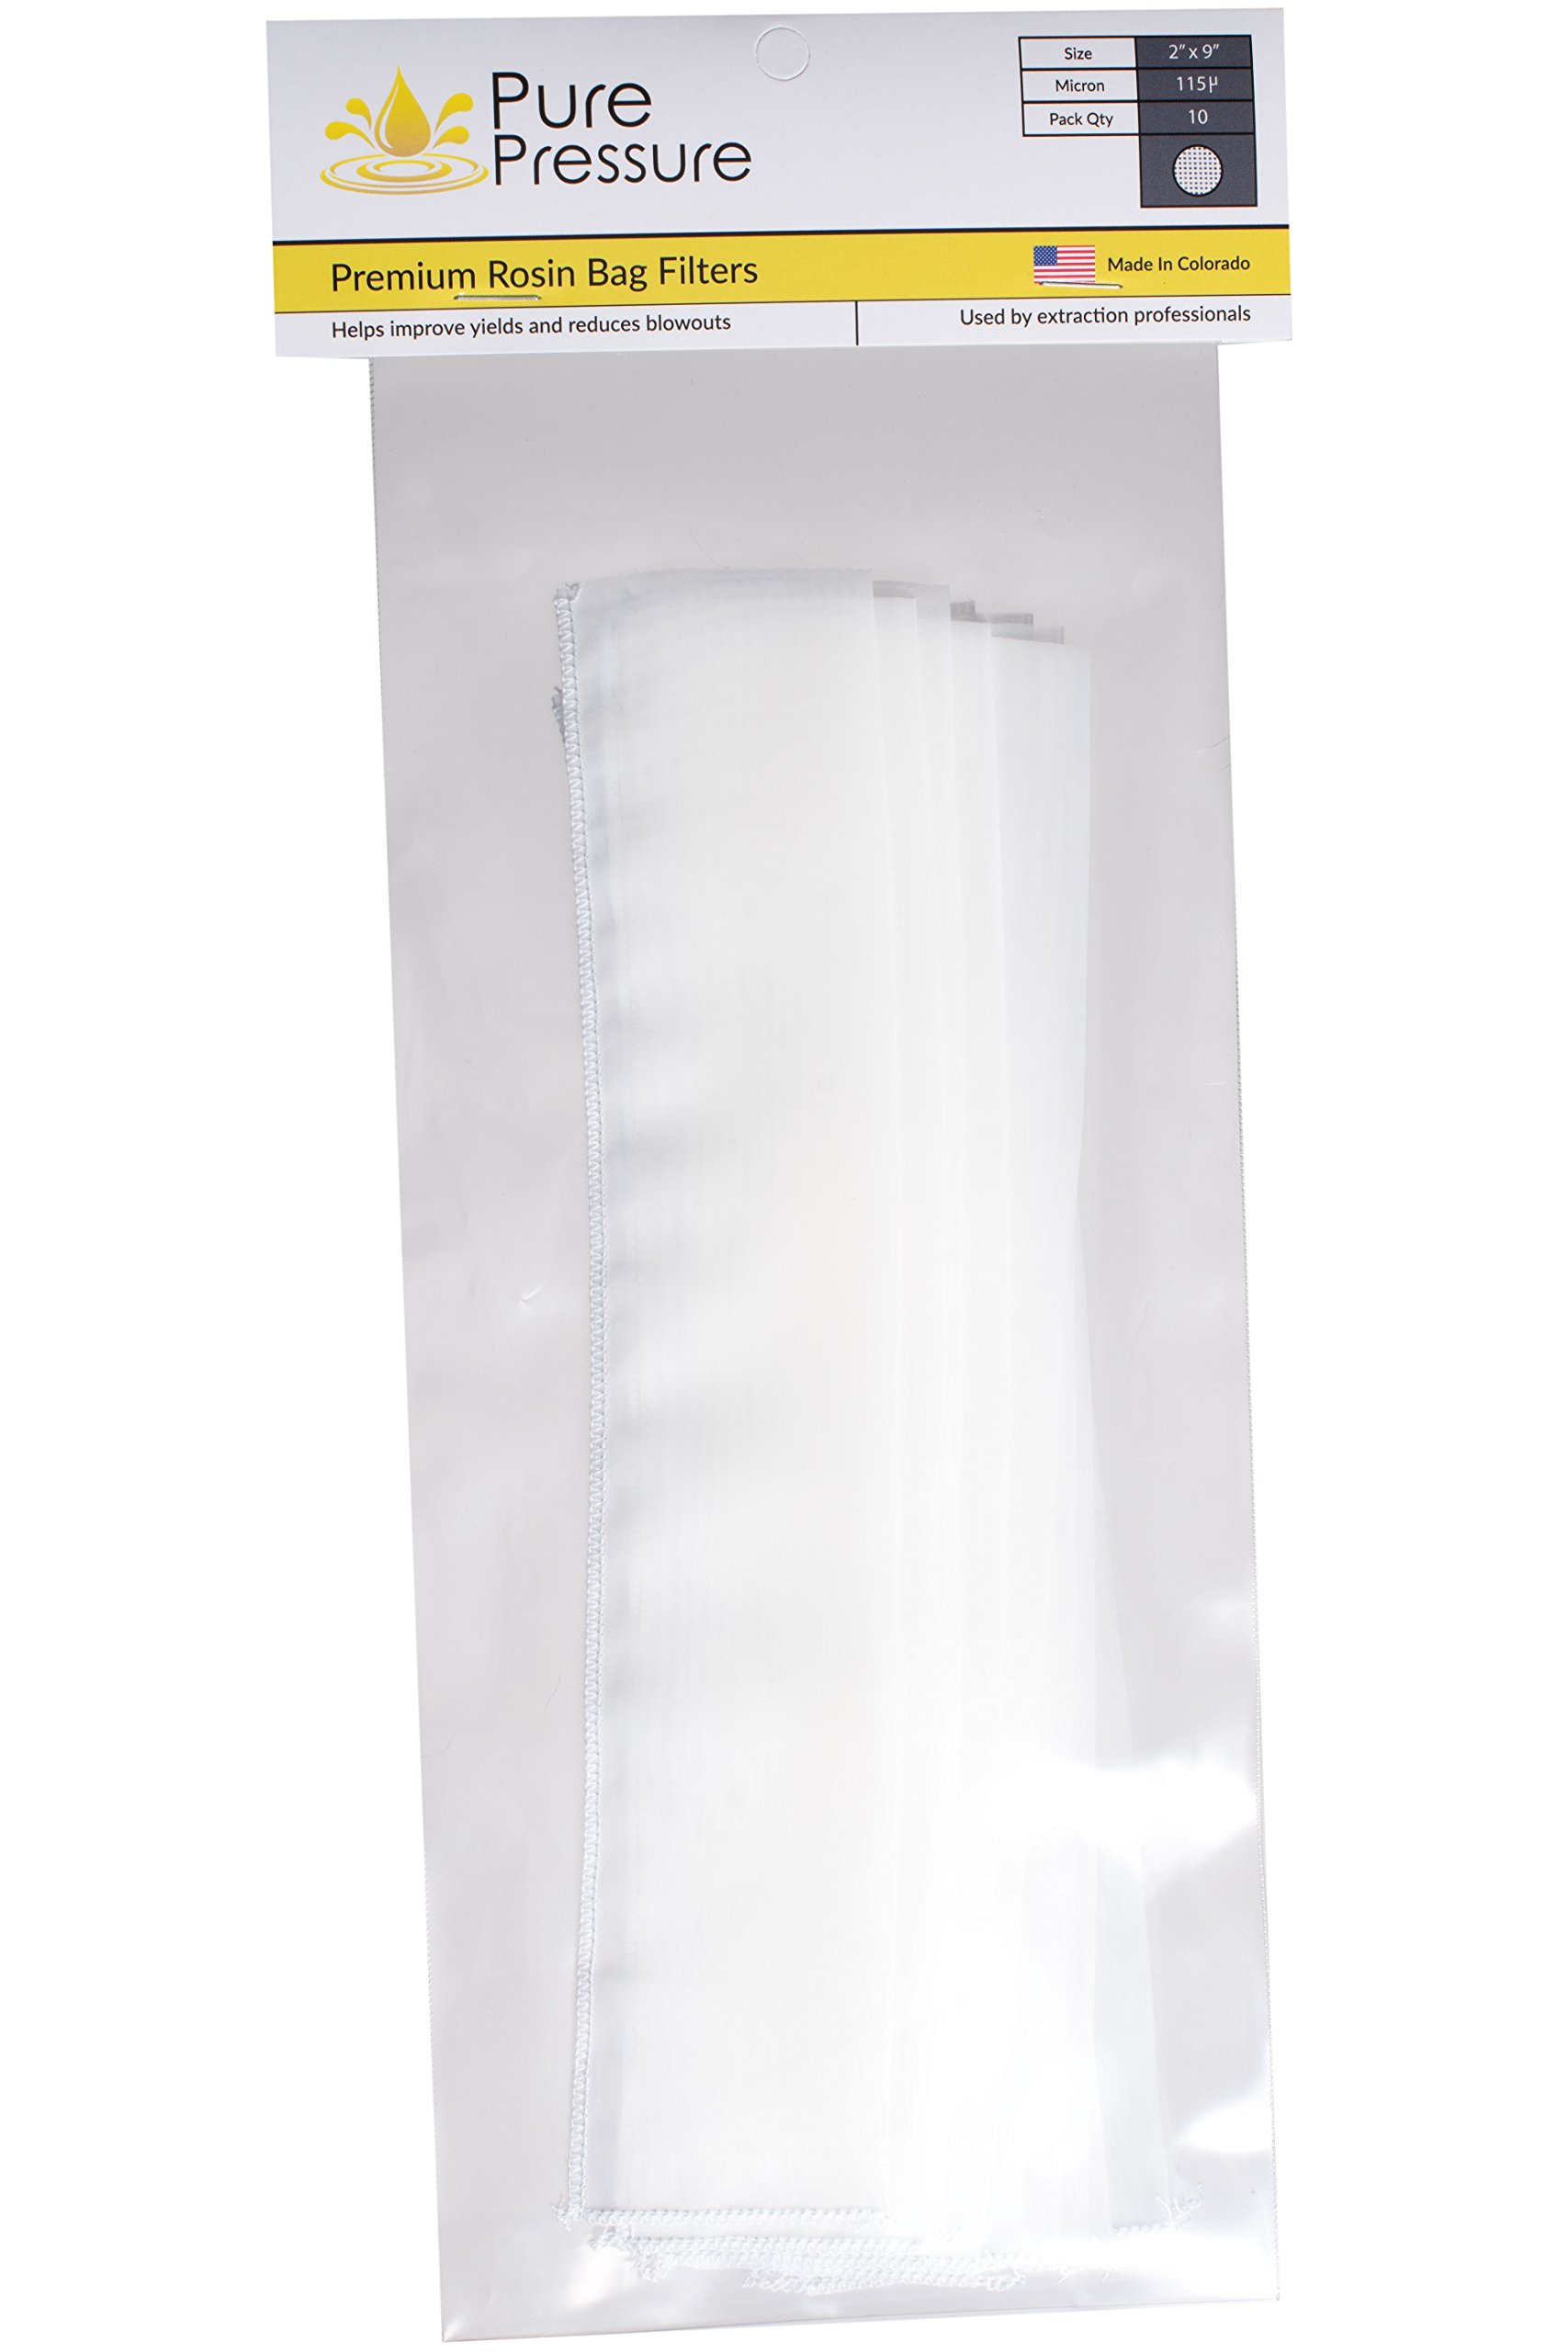 """PurePressure Premium Solventless Rosin Filtration Extraction Press Bags 115 Micron - 2"""" x 9"""" (10 Pack) Made in Denver, Colorado"""